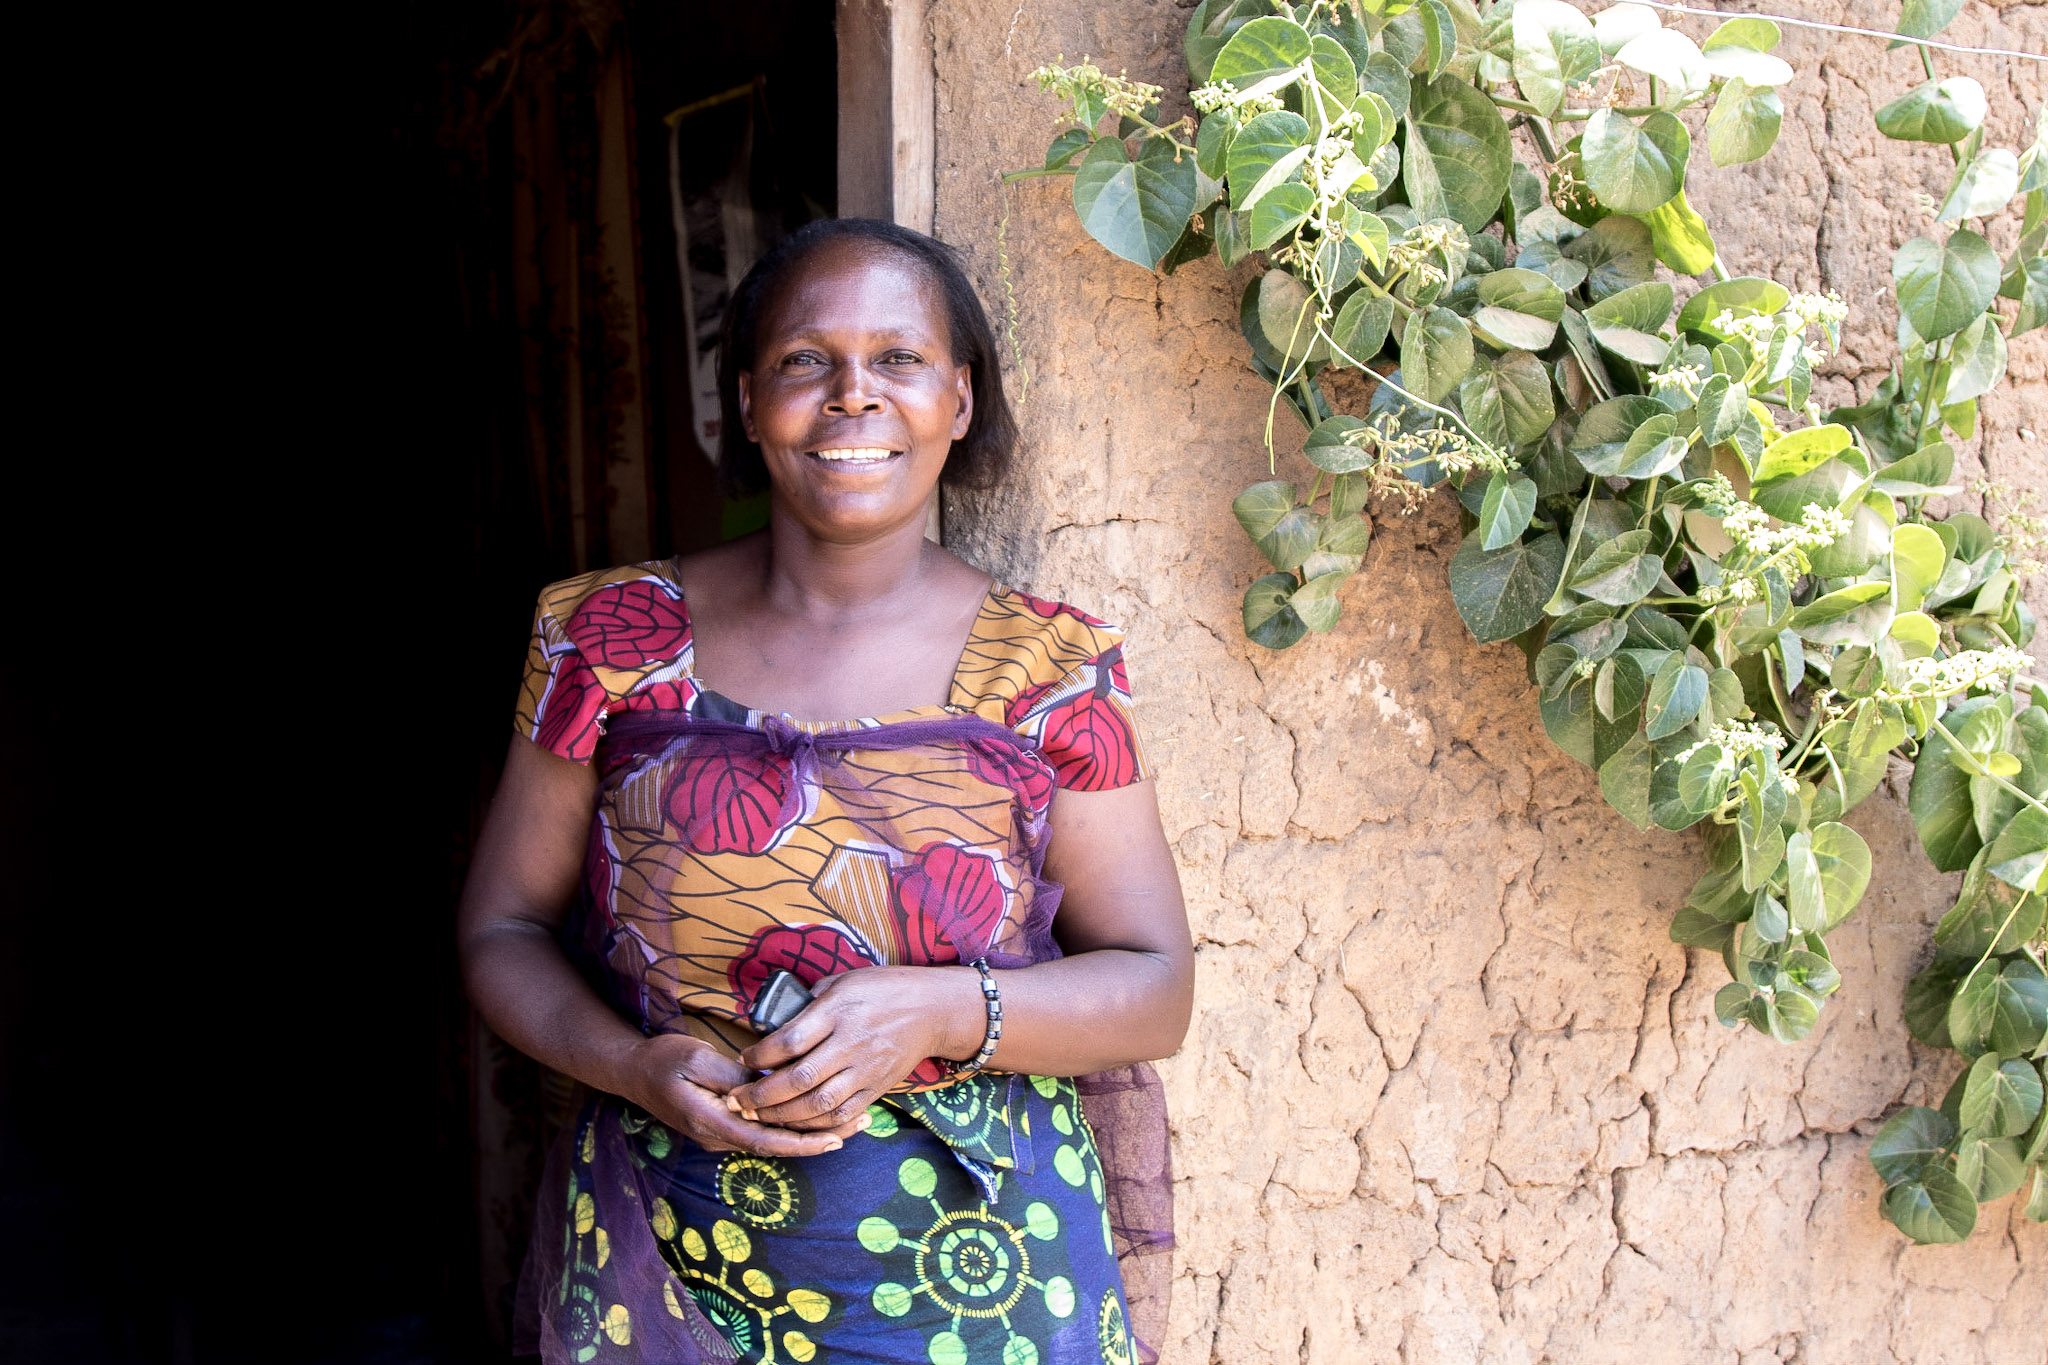 In both the developing and developed worlds, women struggle to access basic financial services.